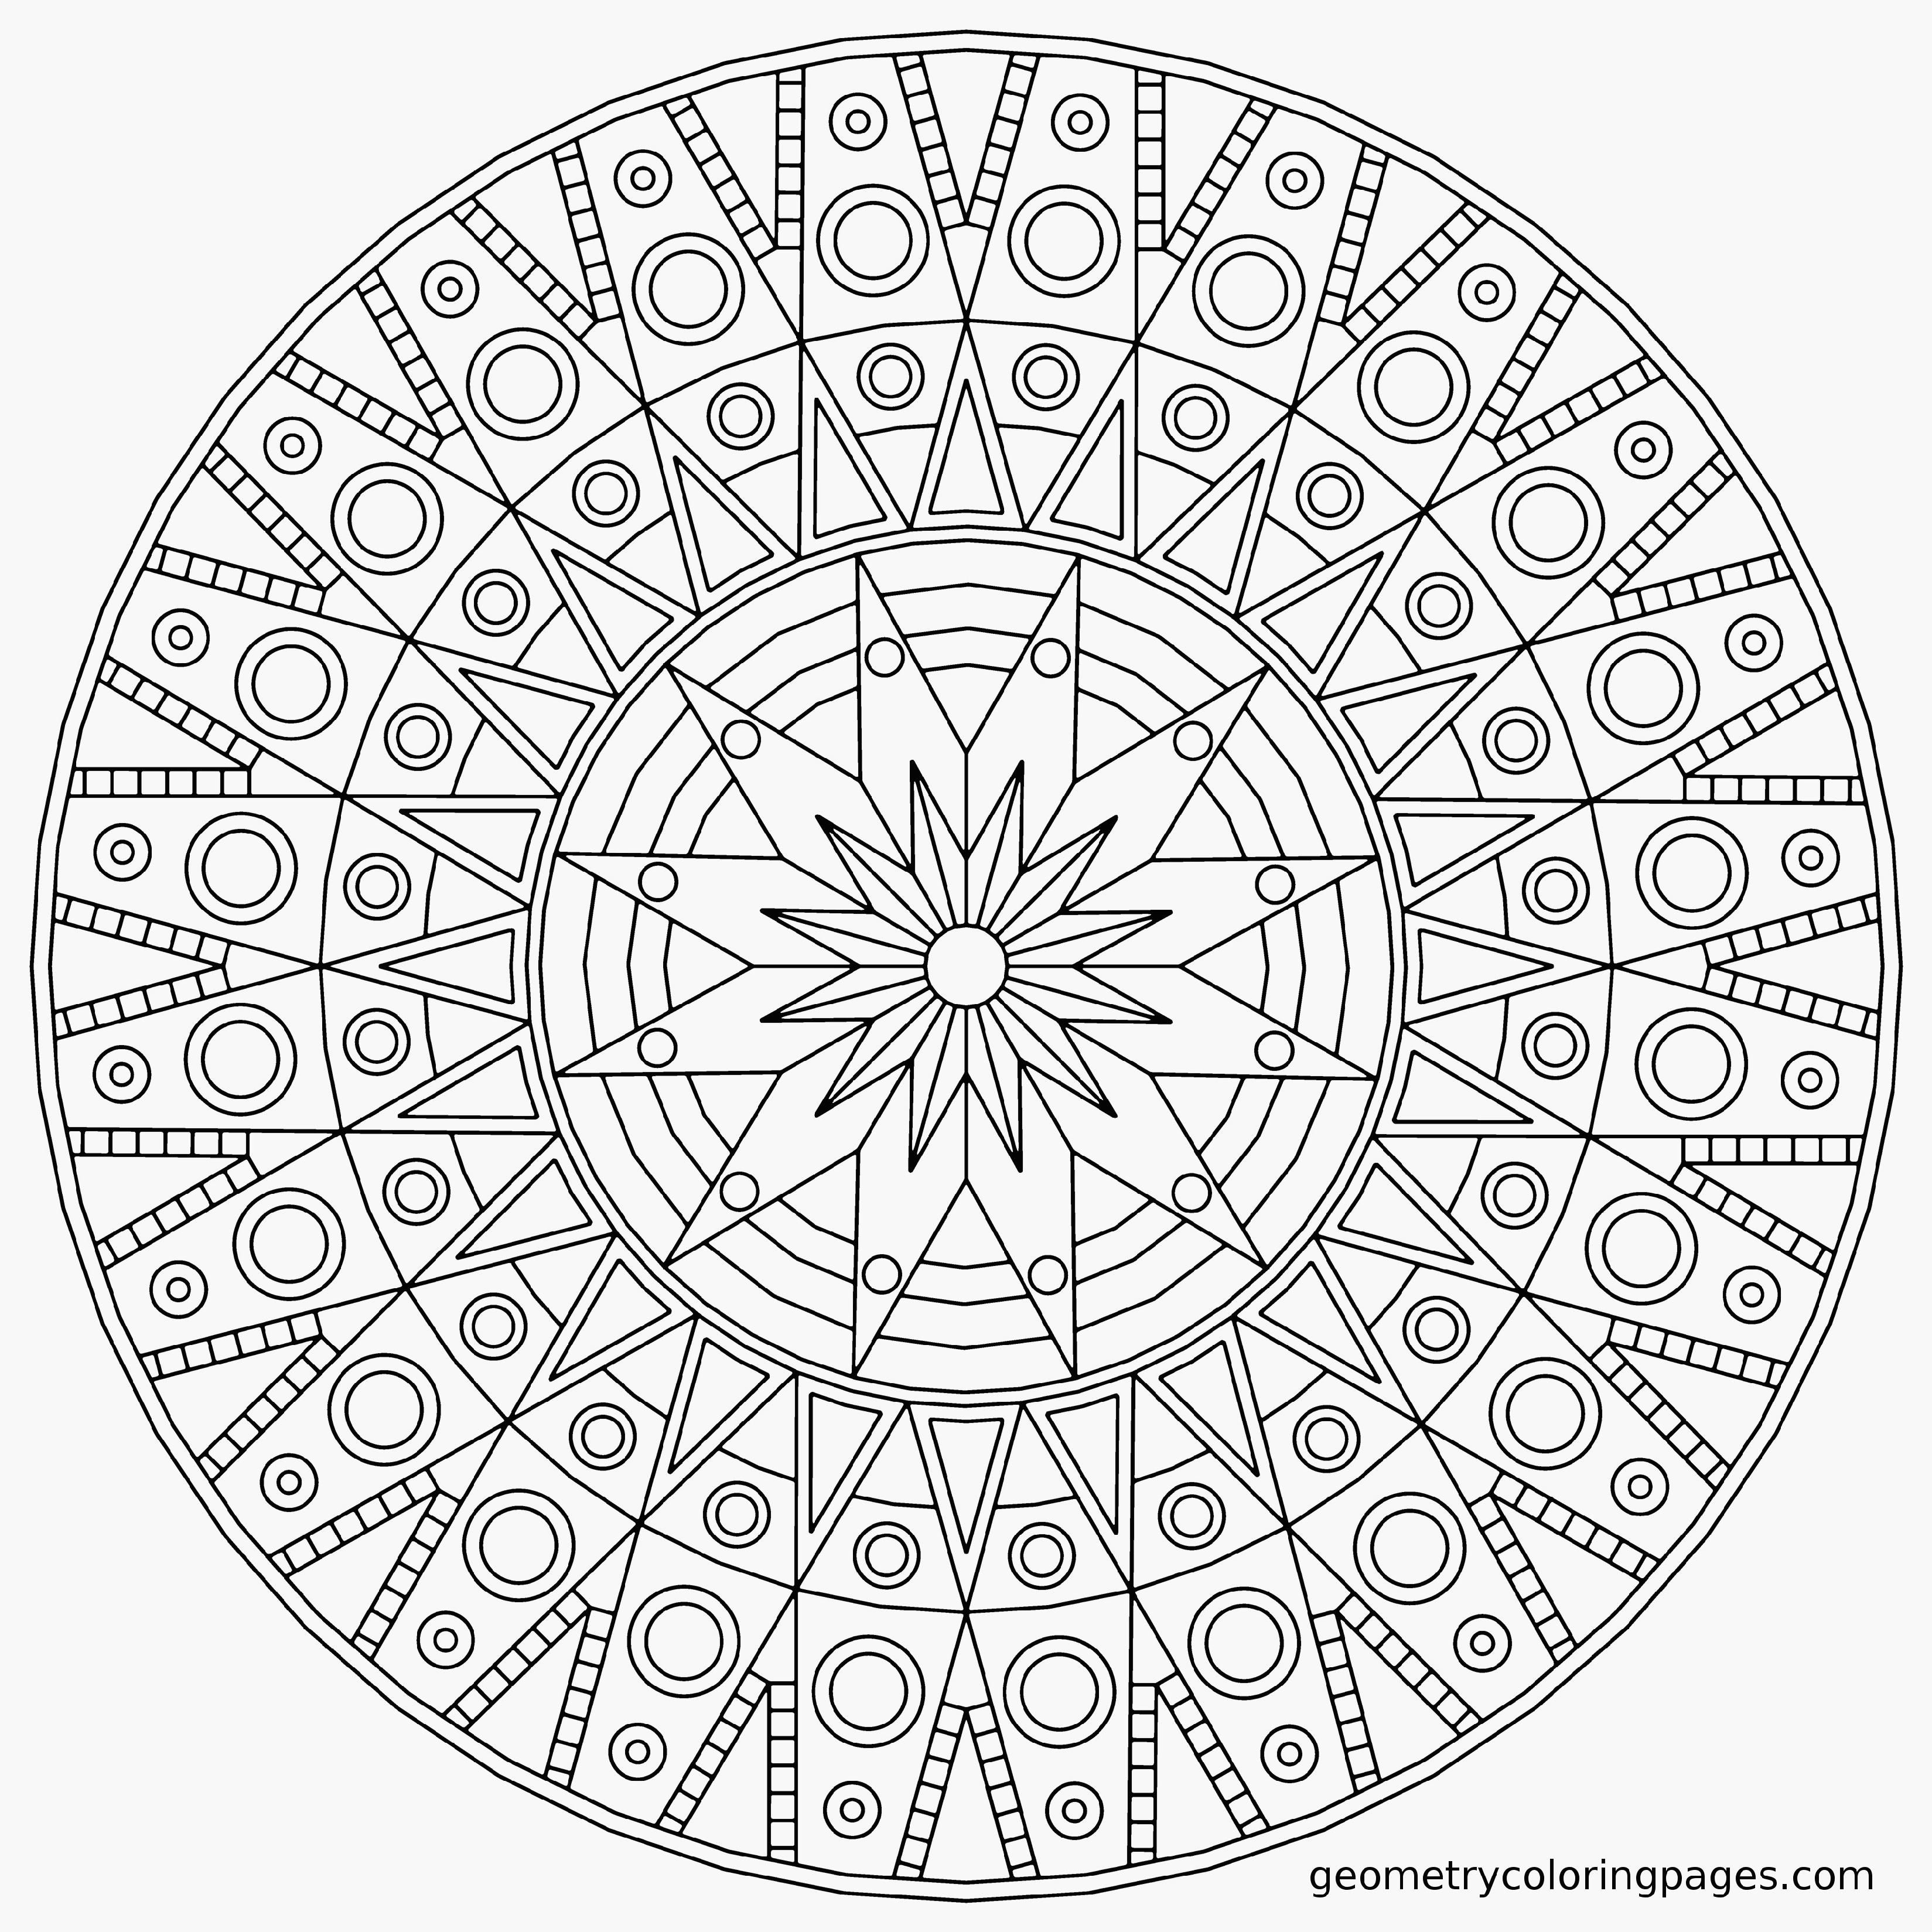 Mandala Coloring Pages Expert Level Printable Coloring